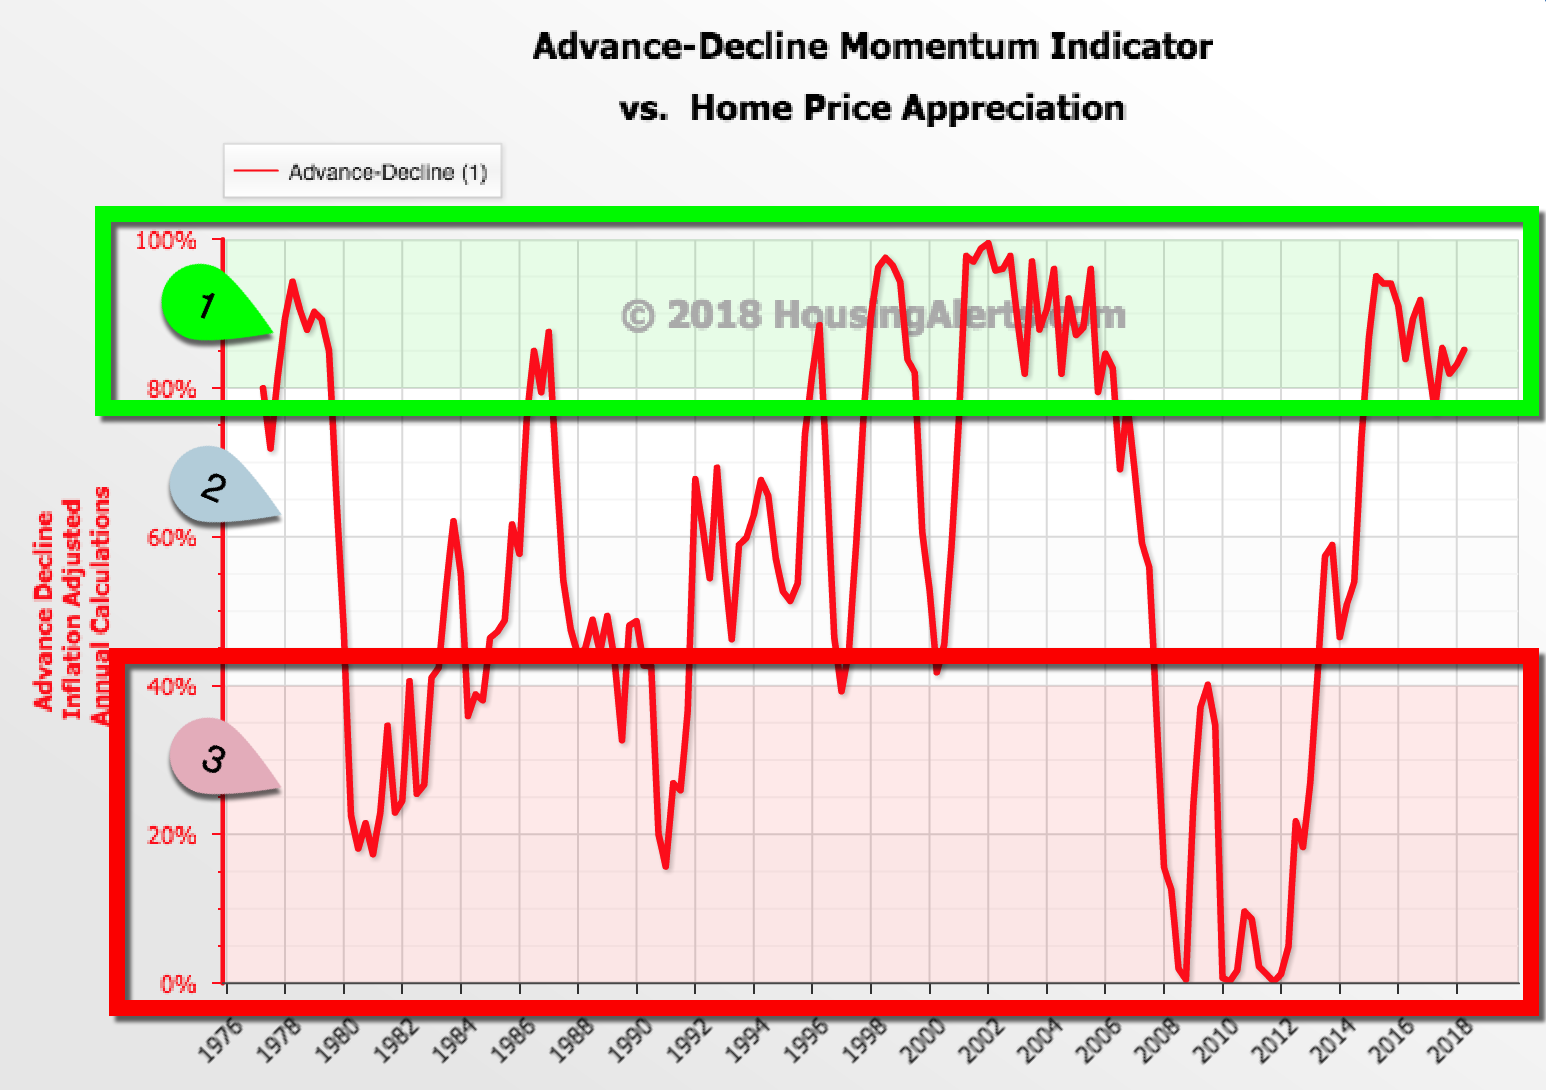 Advance-Decline Momentum Indicator vs Home Appreciation Year-Over-Year National Market 1976-2018